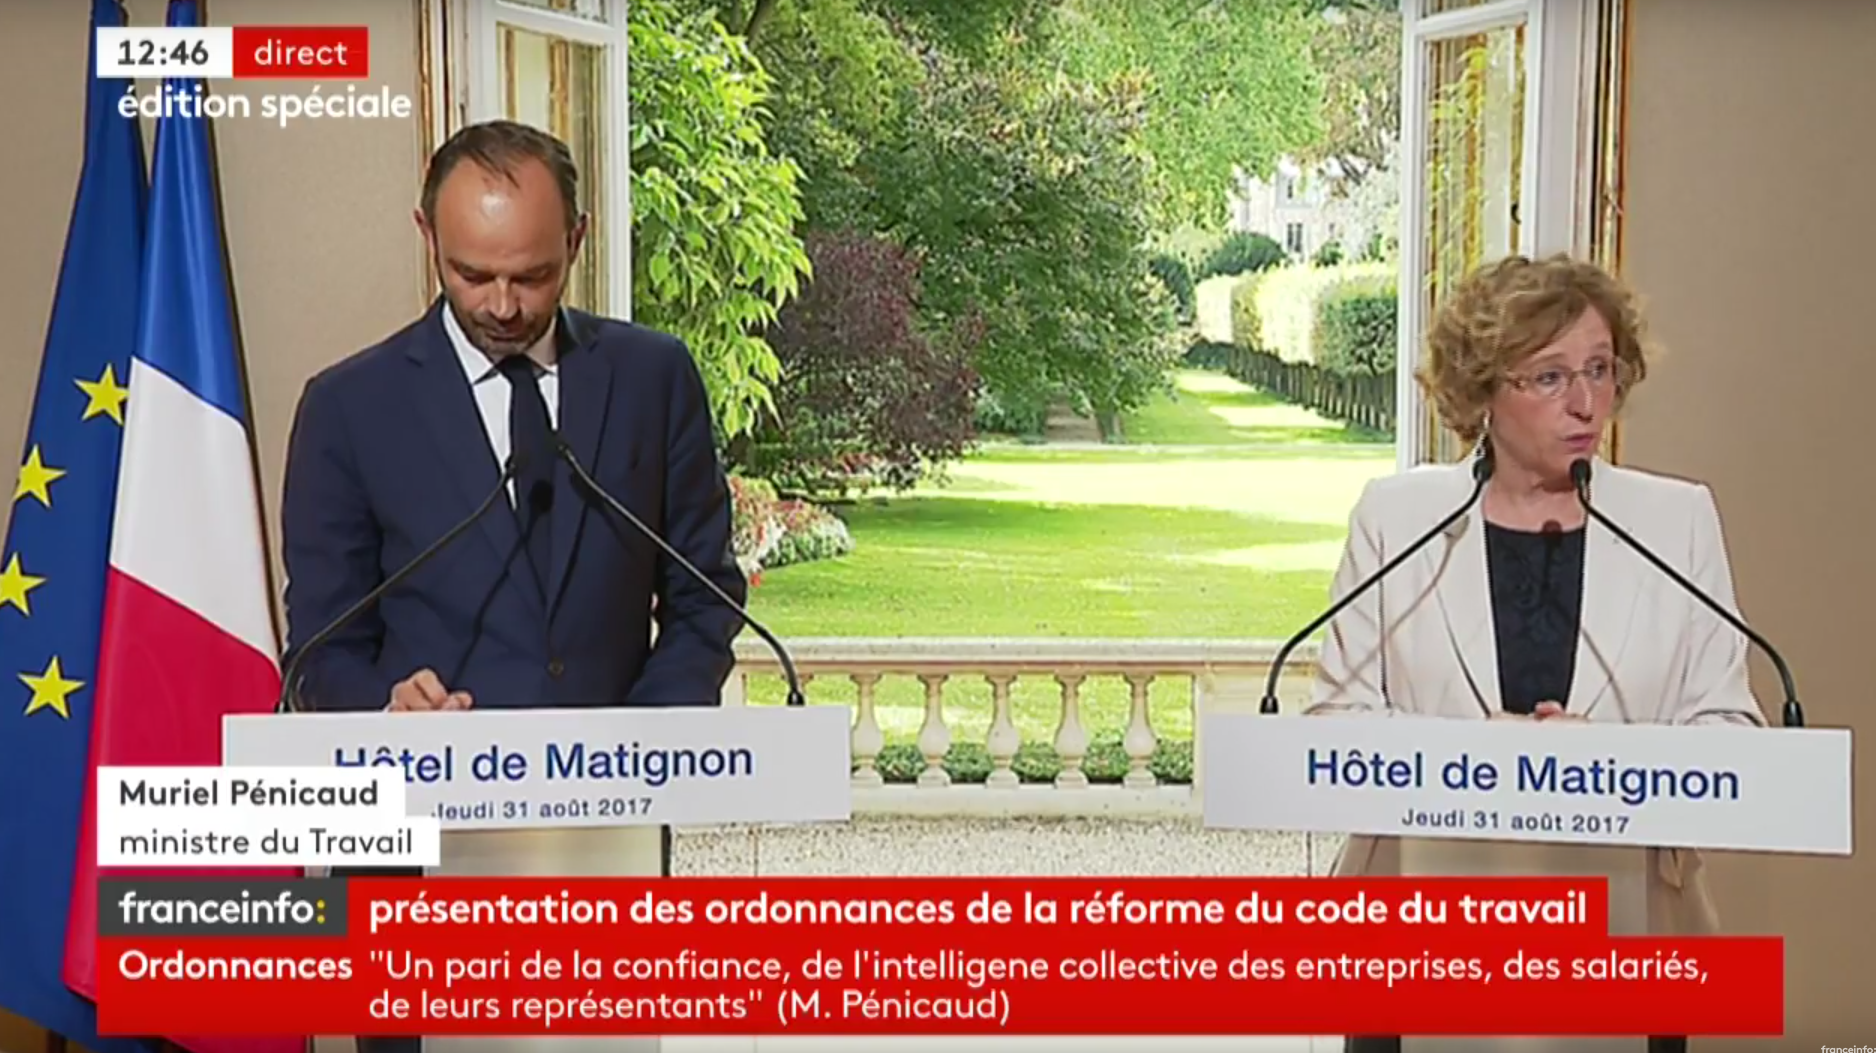 Muriel Pénicaud, Minister for Labour, and Prime Minster Édouard Philippe presenting the new Labour law reform